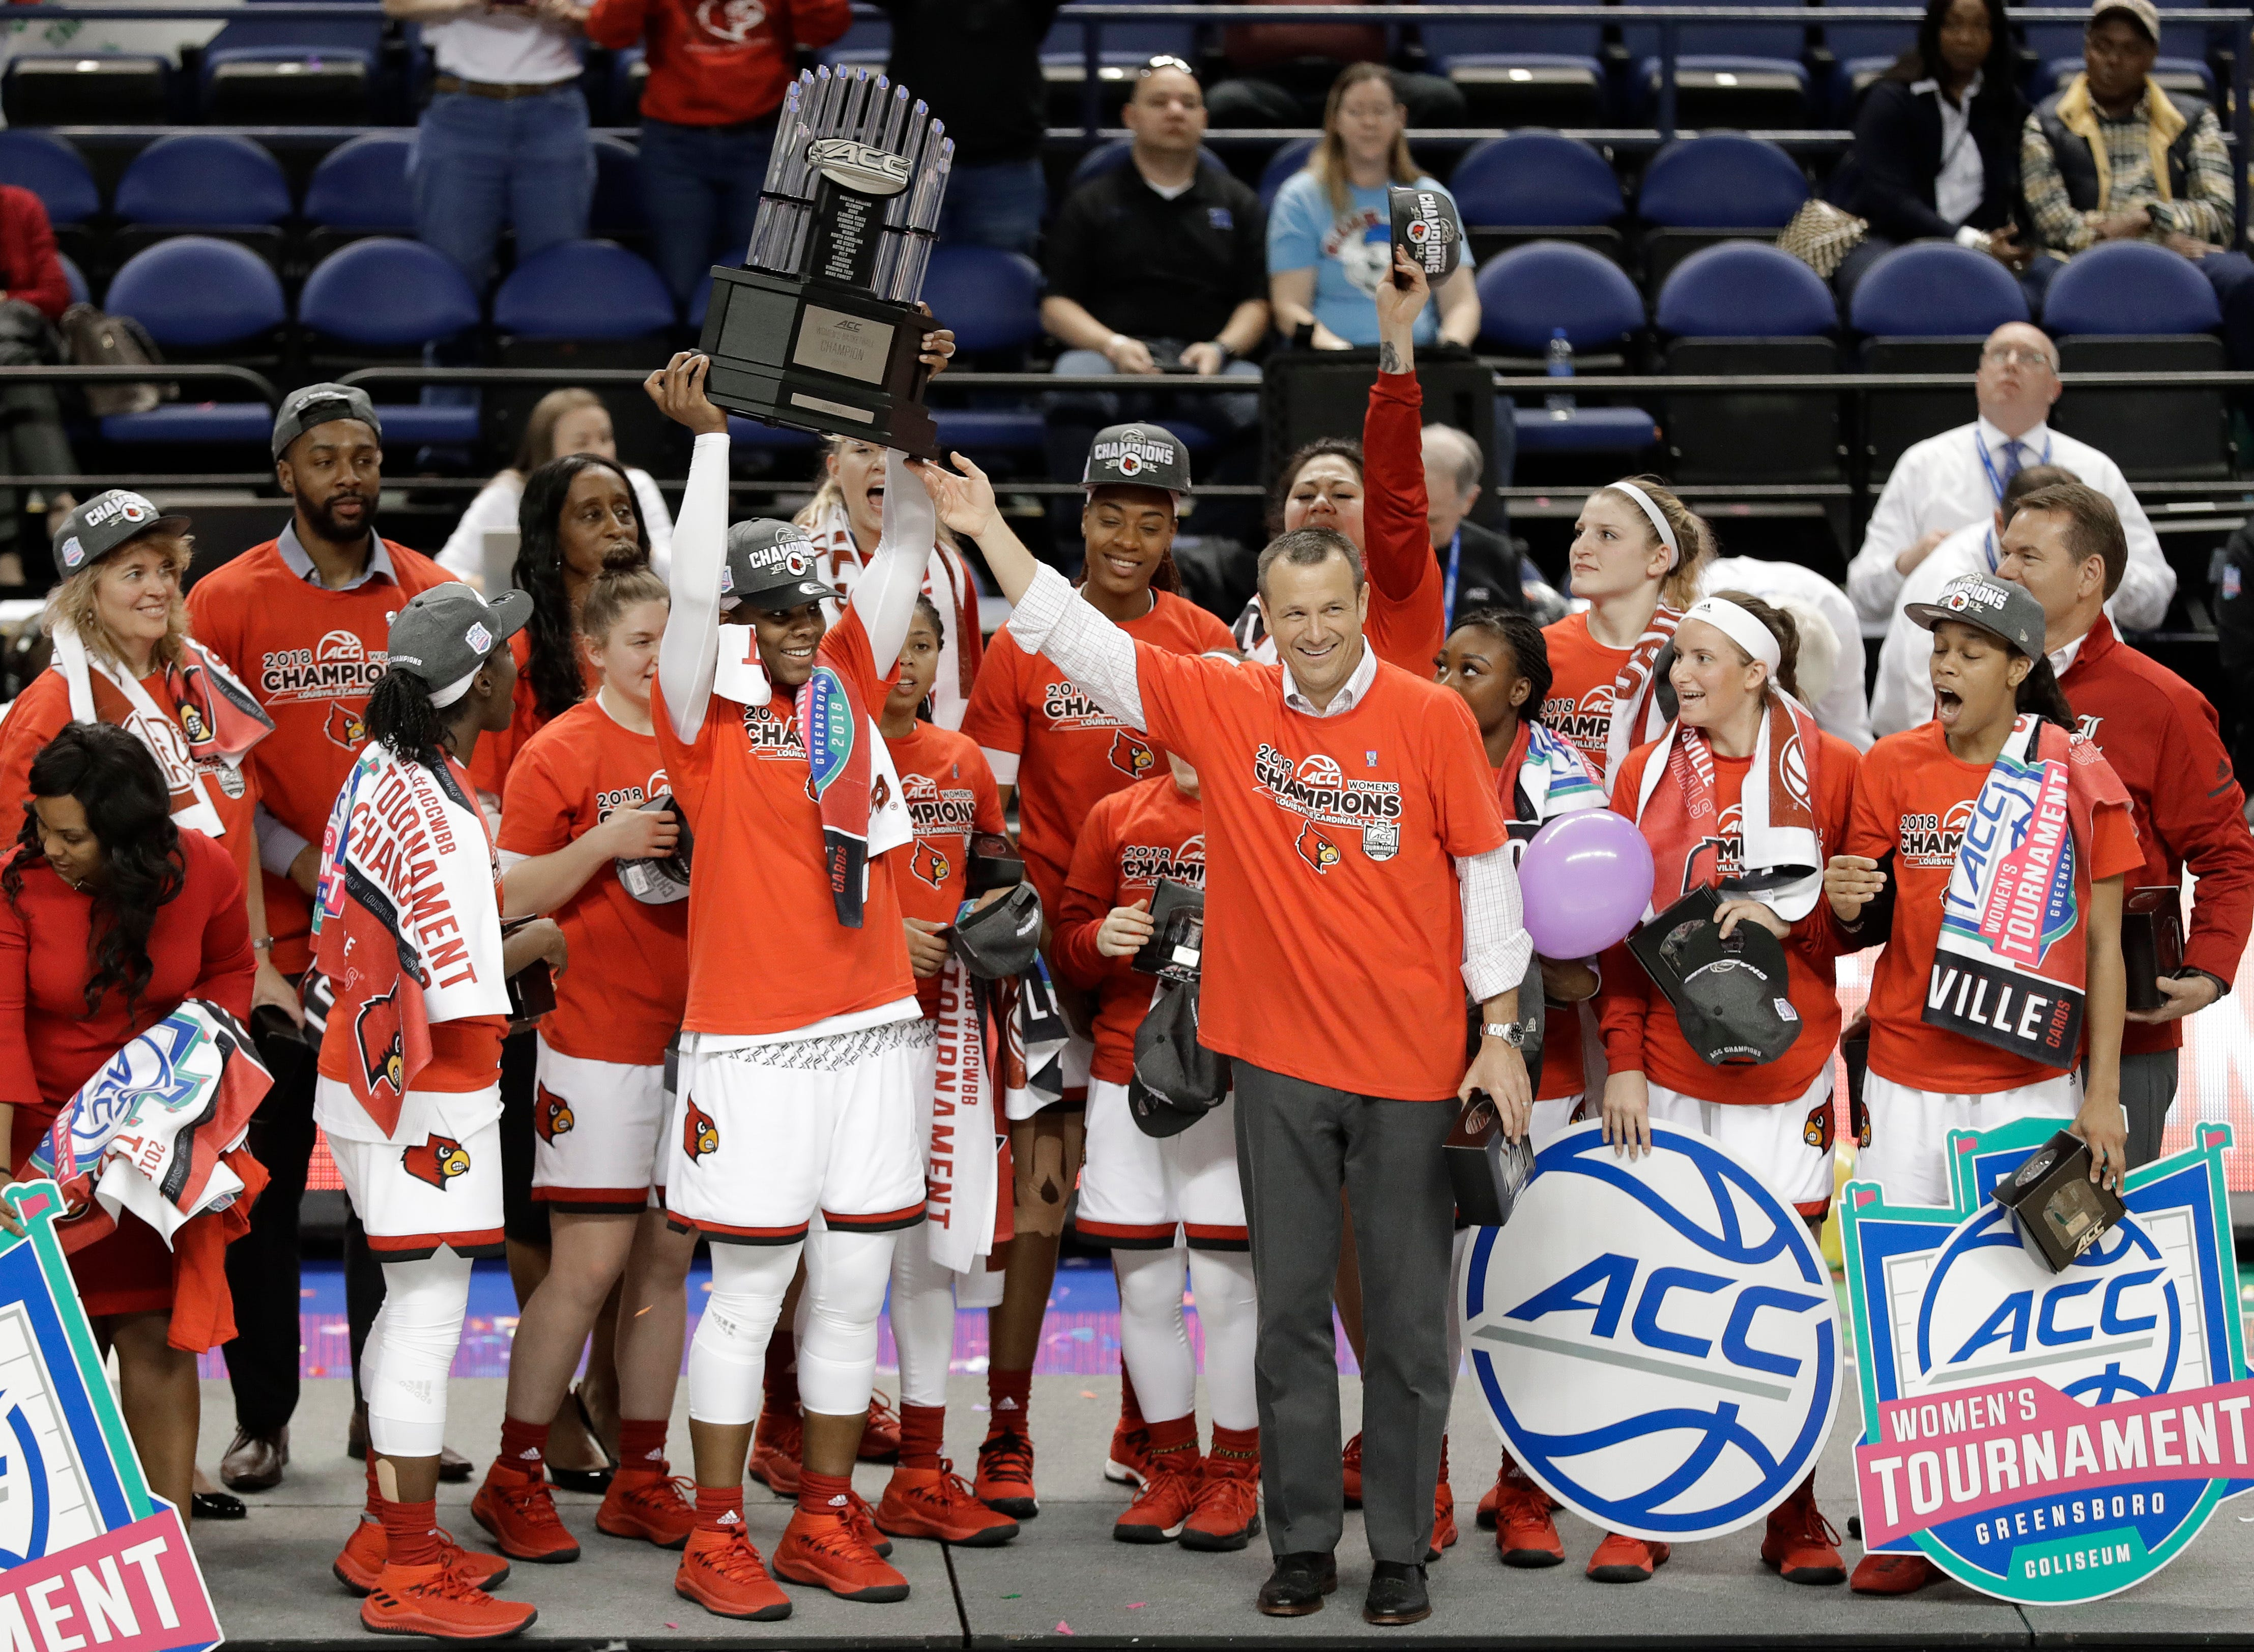 image relating to Ncaa Women's Printable Bracket called NCAA Womens Basketball Match 2018: Down load a blank